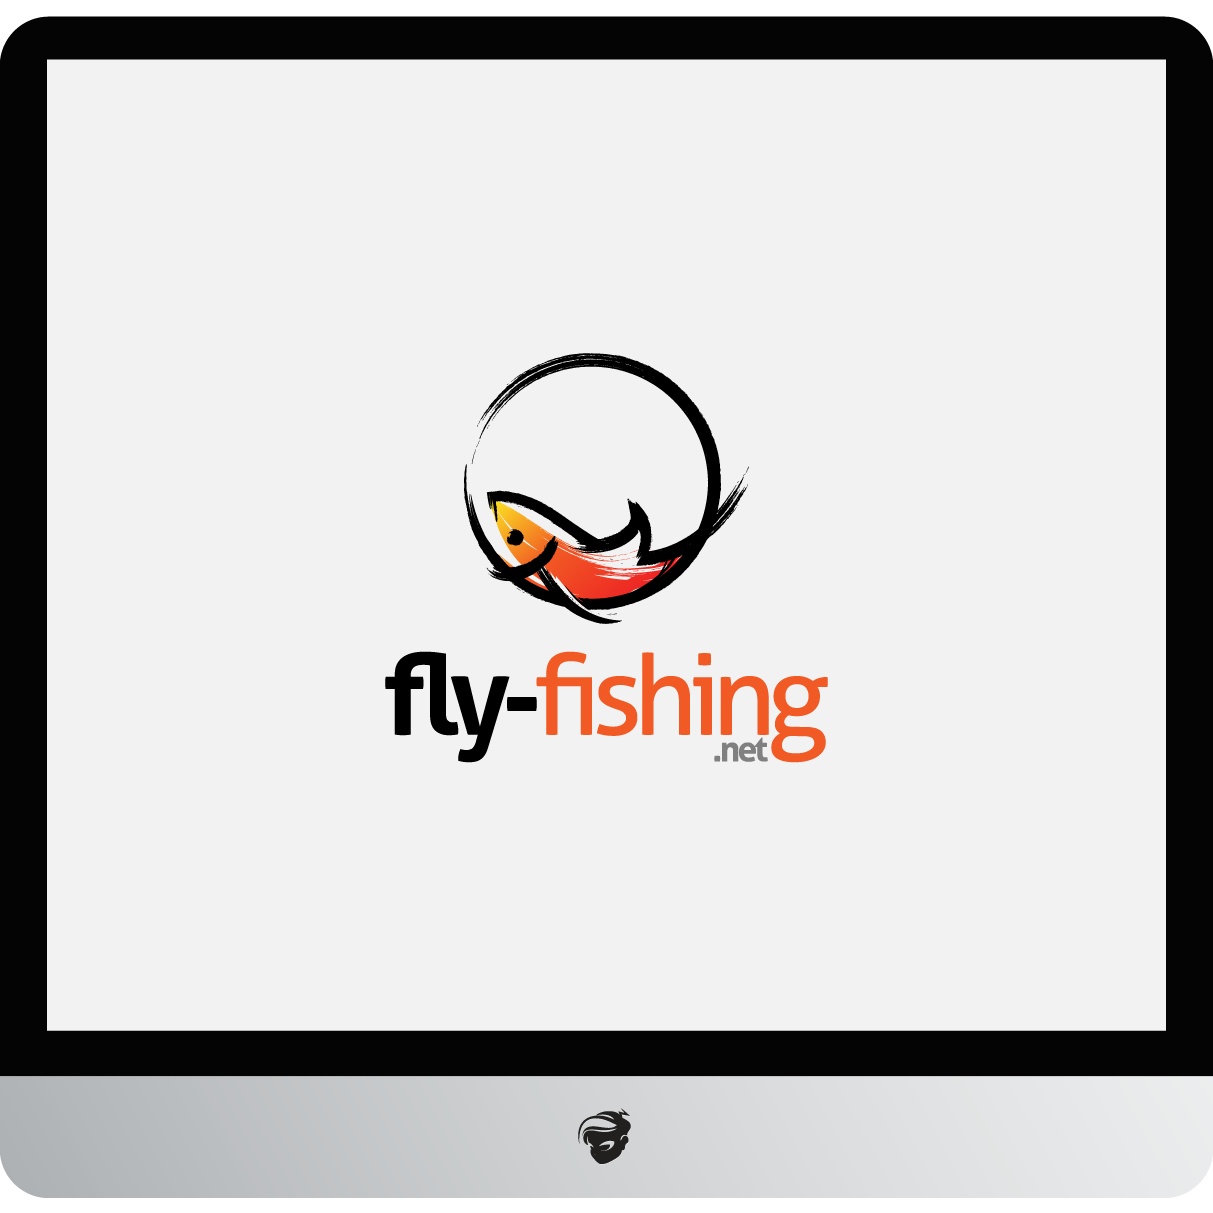 Logo Design by zesthar - Entry No. 129 in the Logo Design Contest Artistic Logo Design for fly-fishing.net.